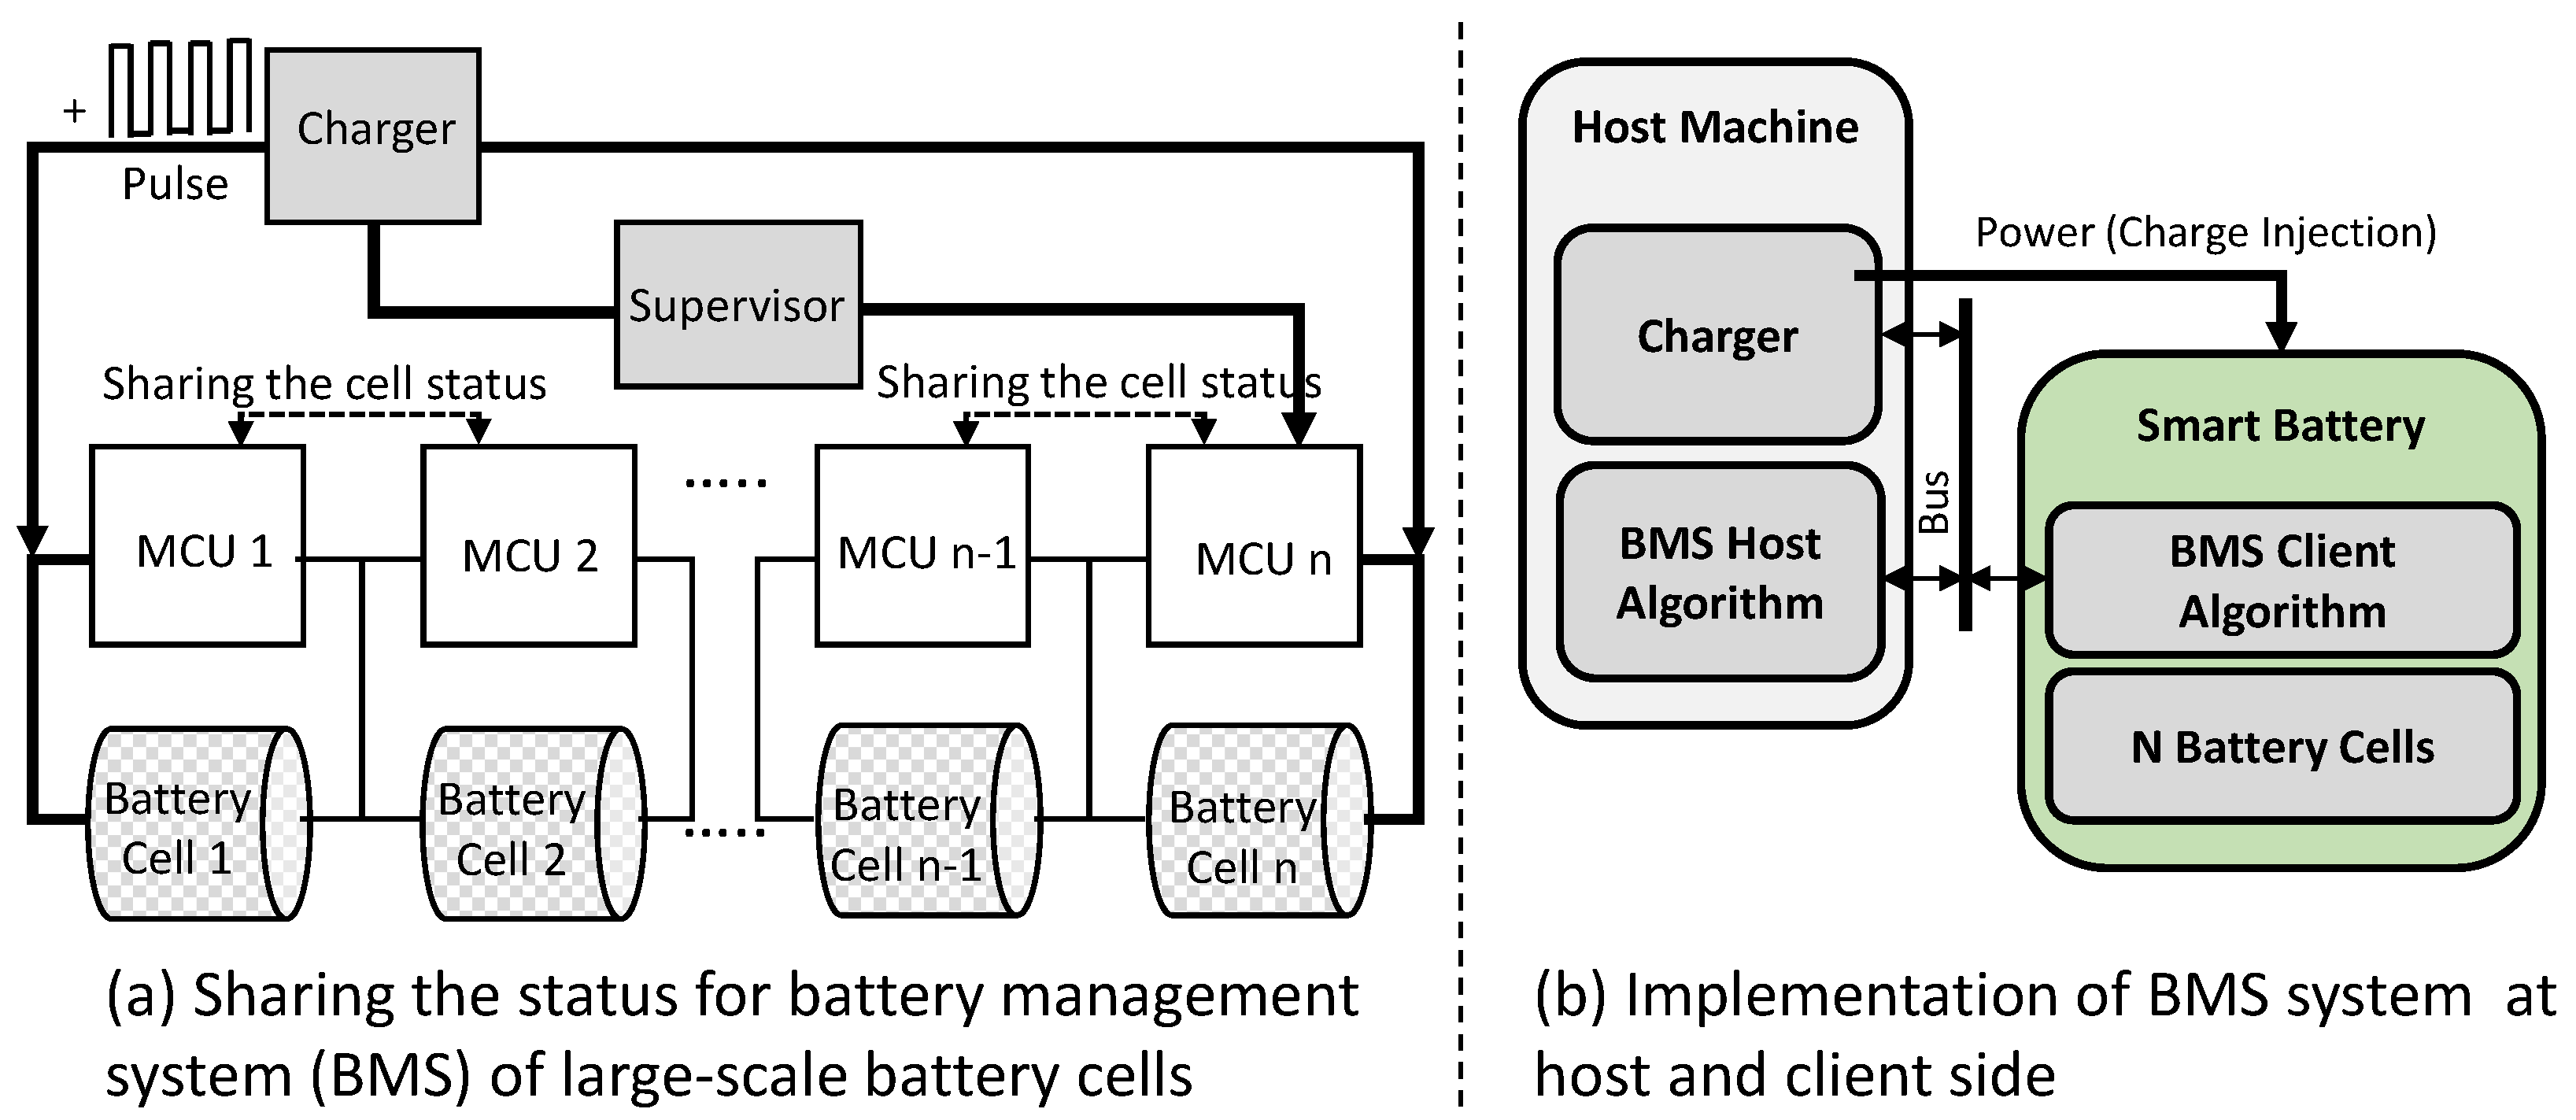 Energies Free Full Text Pulse Based Fast Battery Iot Charger Transistor And Optoisolator Electrical Engineering Stack Exchange 09 00209 G001 1024